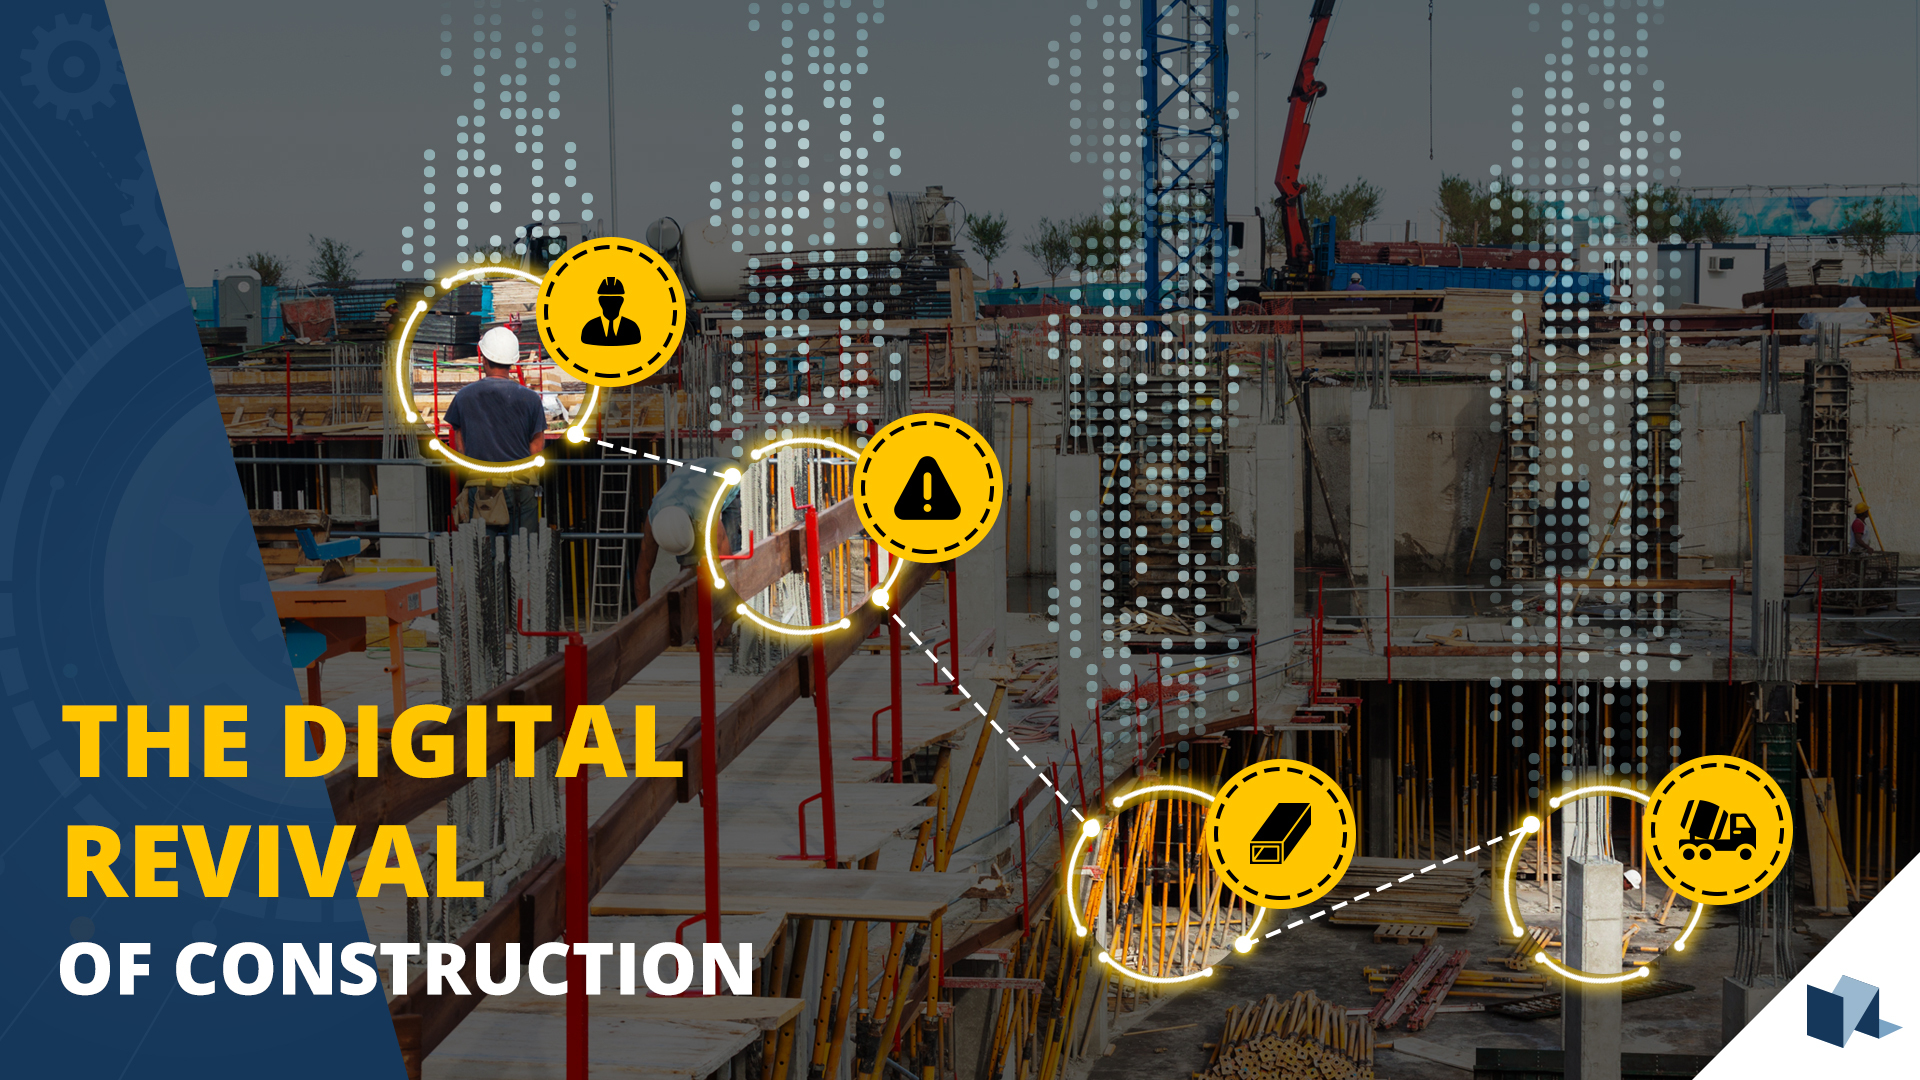 The Digital Revival of Construction